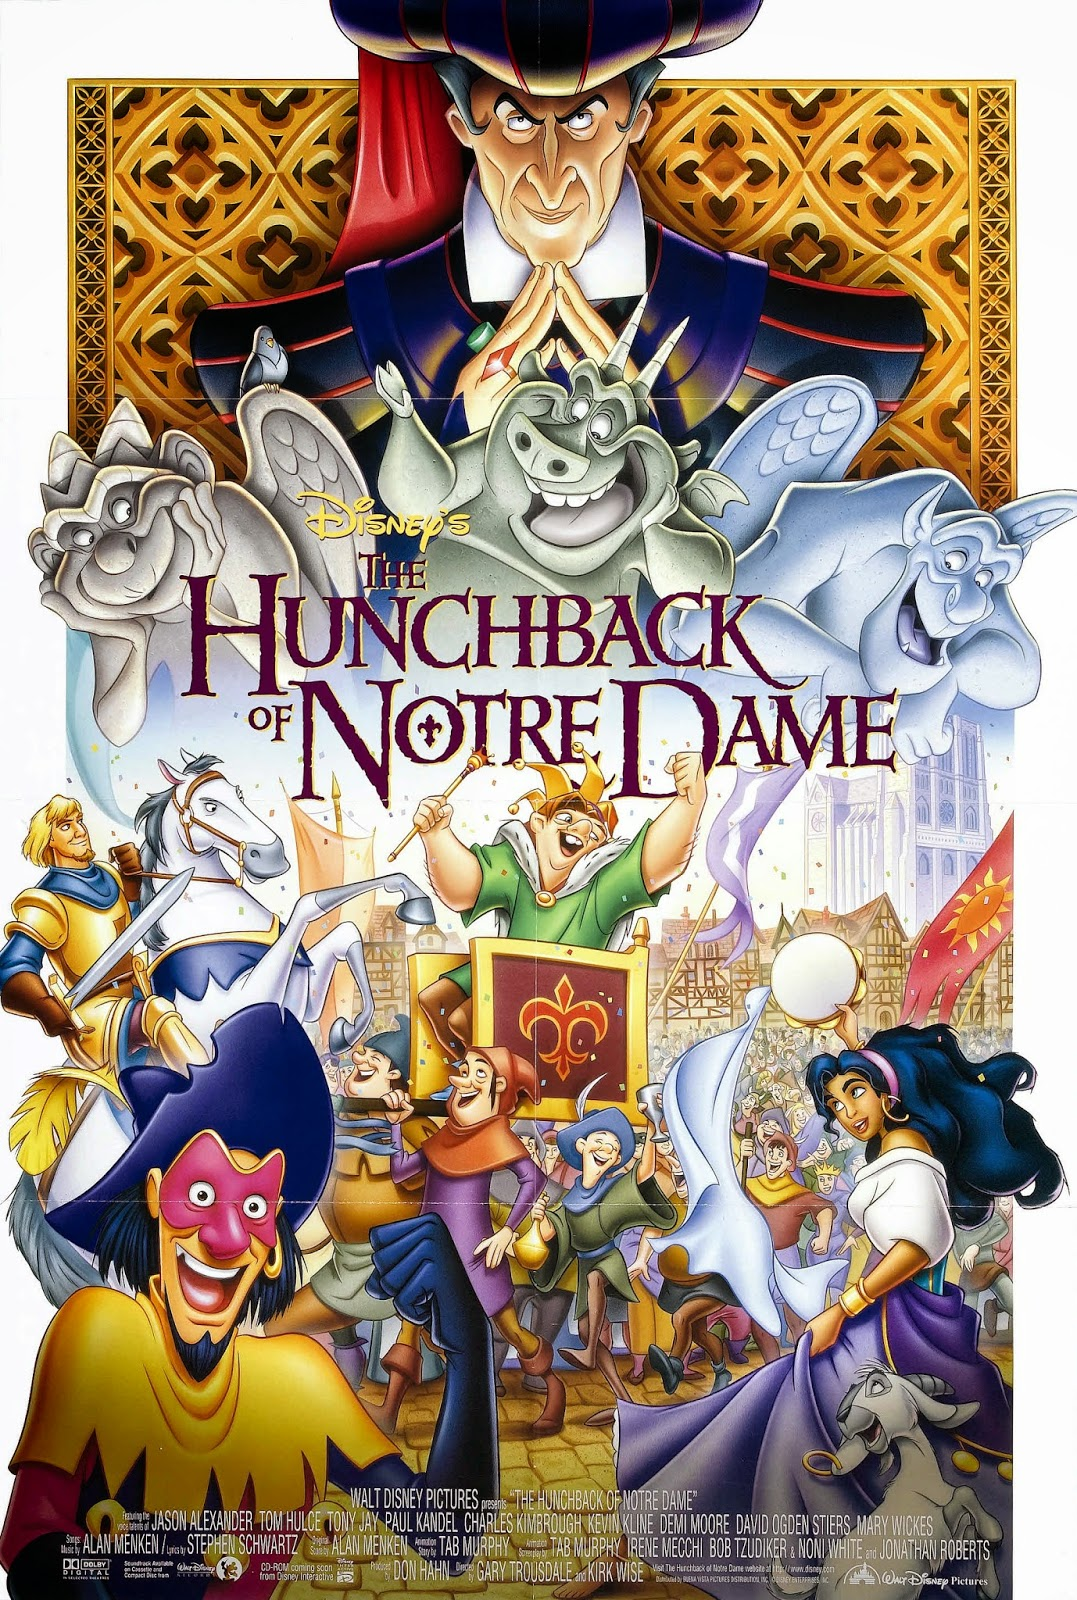 the hunchback of notre dame english literature essay The circulation system is currently offline access to account information and availability is limited.